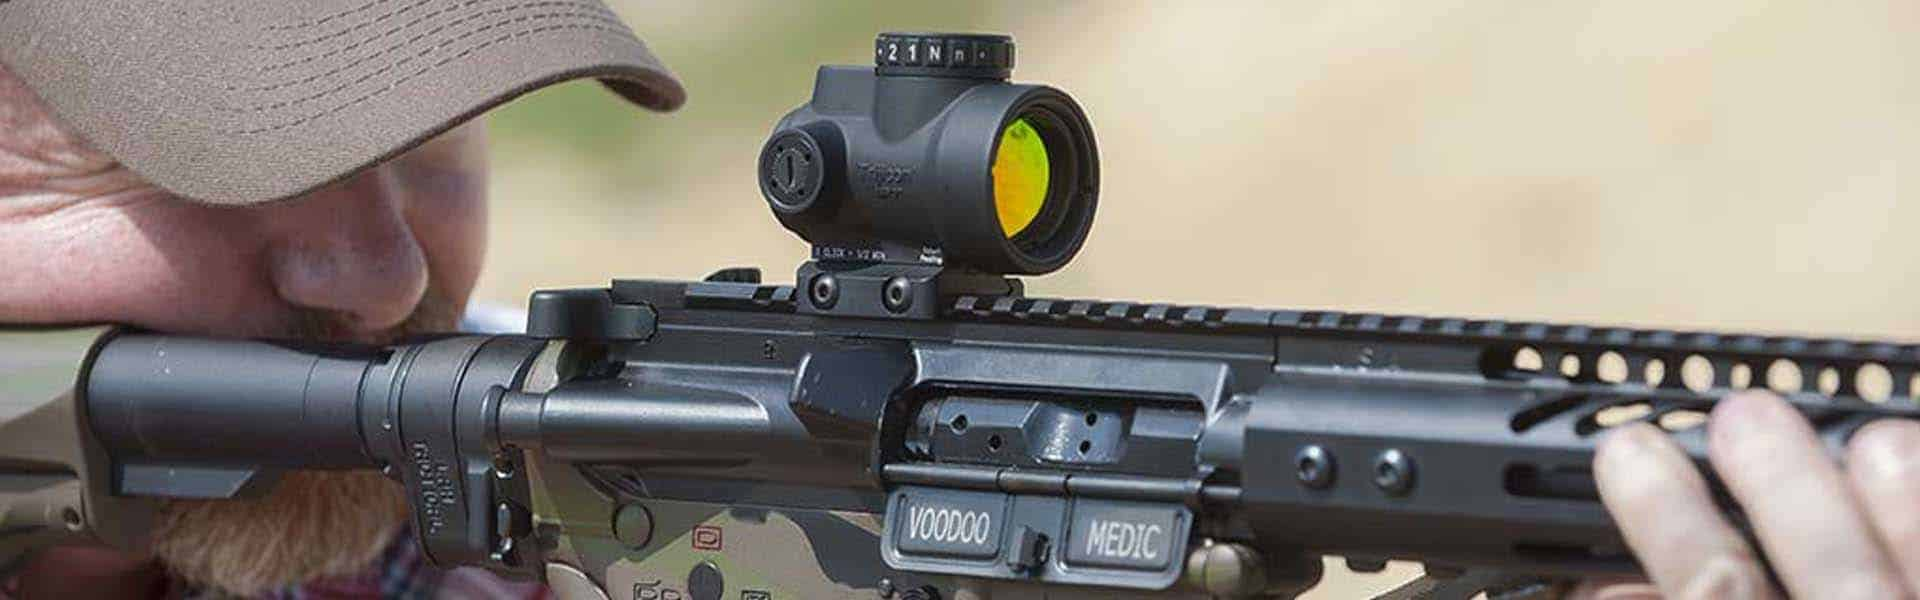 Trijicon MRO Red Dot Sight Review